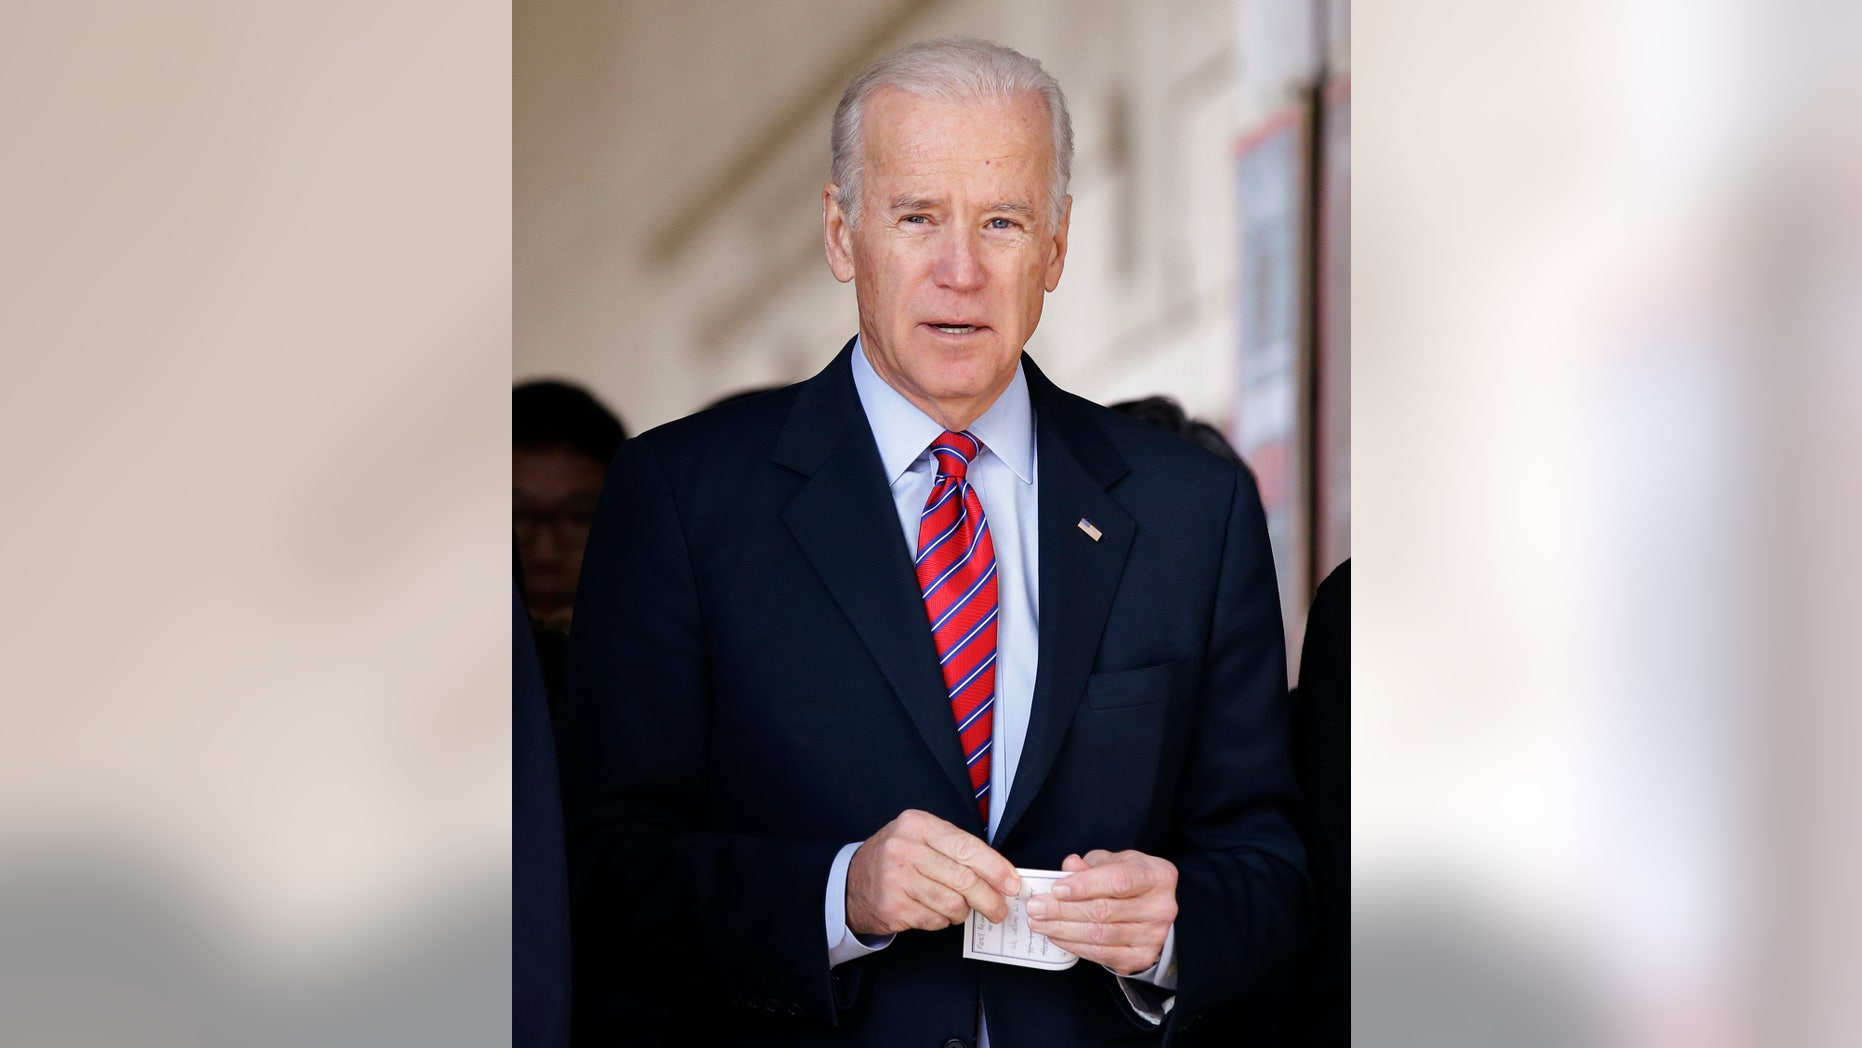 U.S. Vice President Joe Biden leaves after laying a wreath in front of the list of names of U.S. soldiers who died during the 1950-53 Korean War, at the Korean War Memorial Museum in Seoul, Dec. 7, 2013.